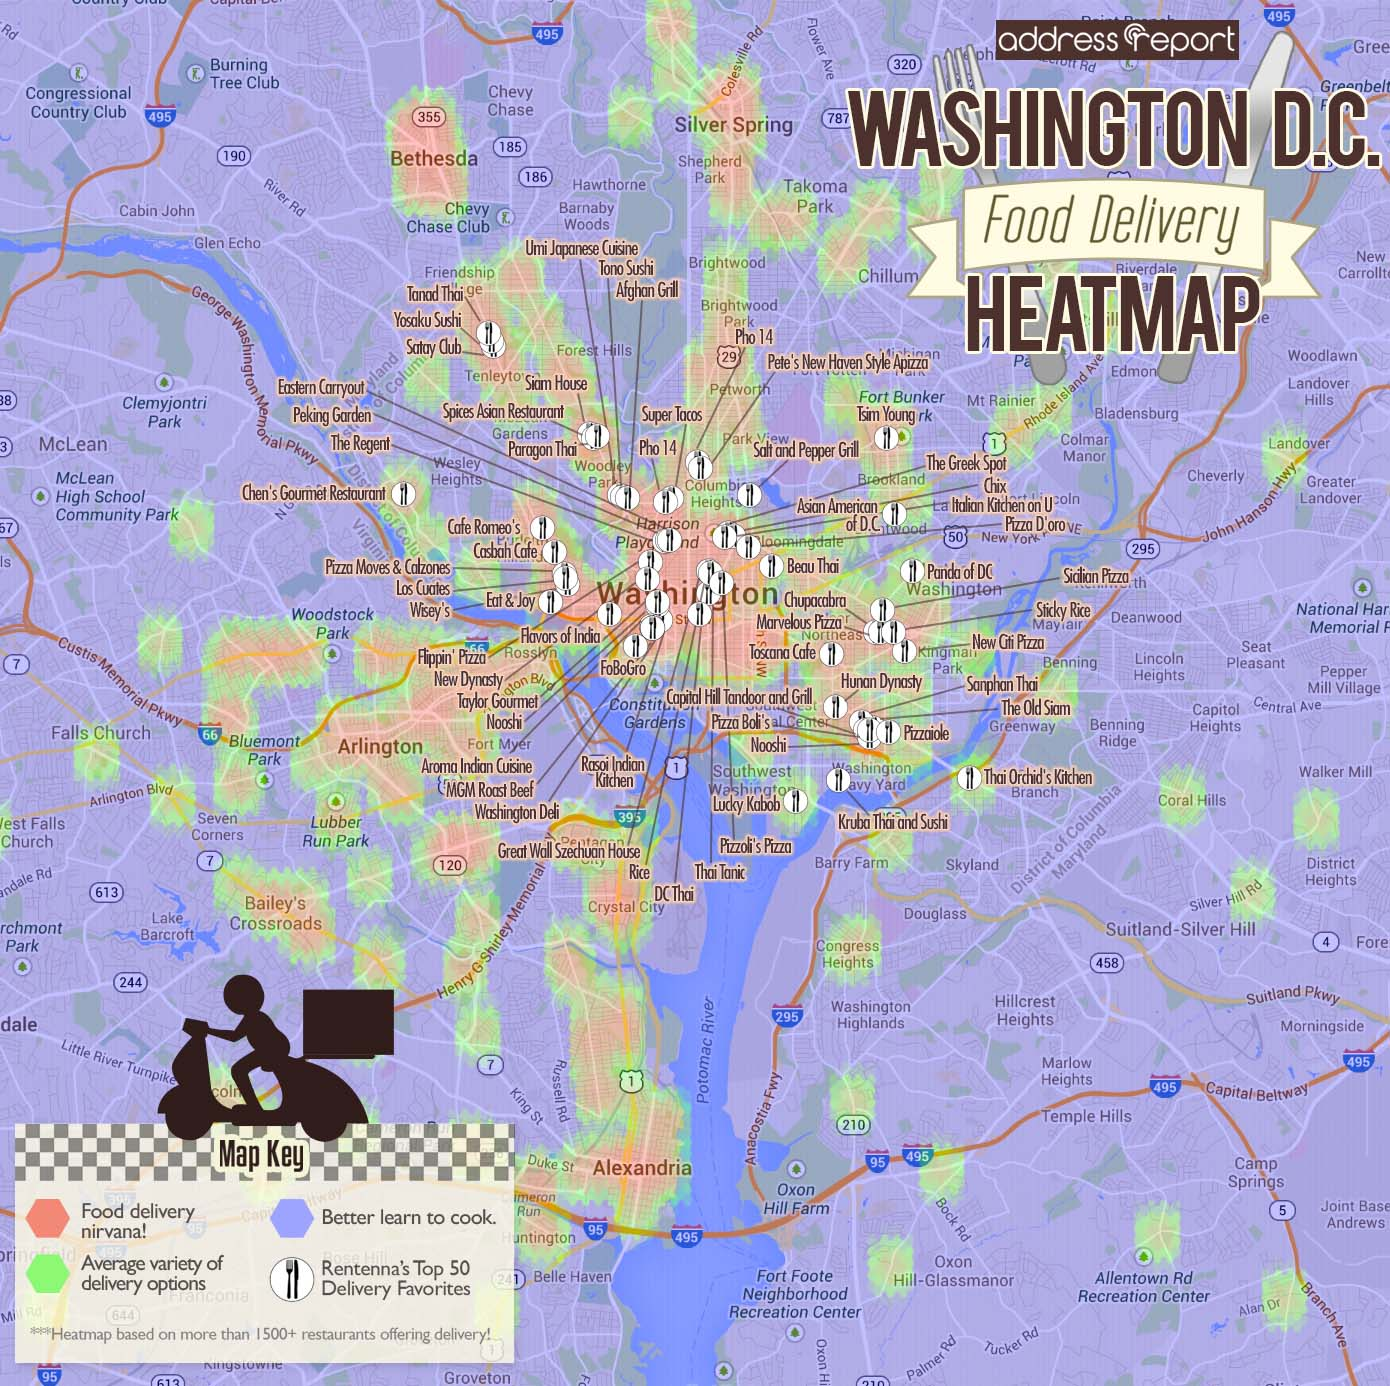 Washington DC Food Delivery Heatmap by Rentenna